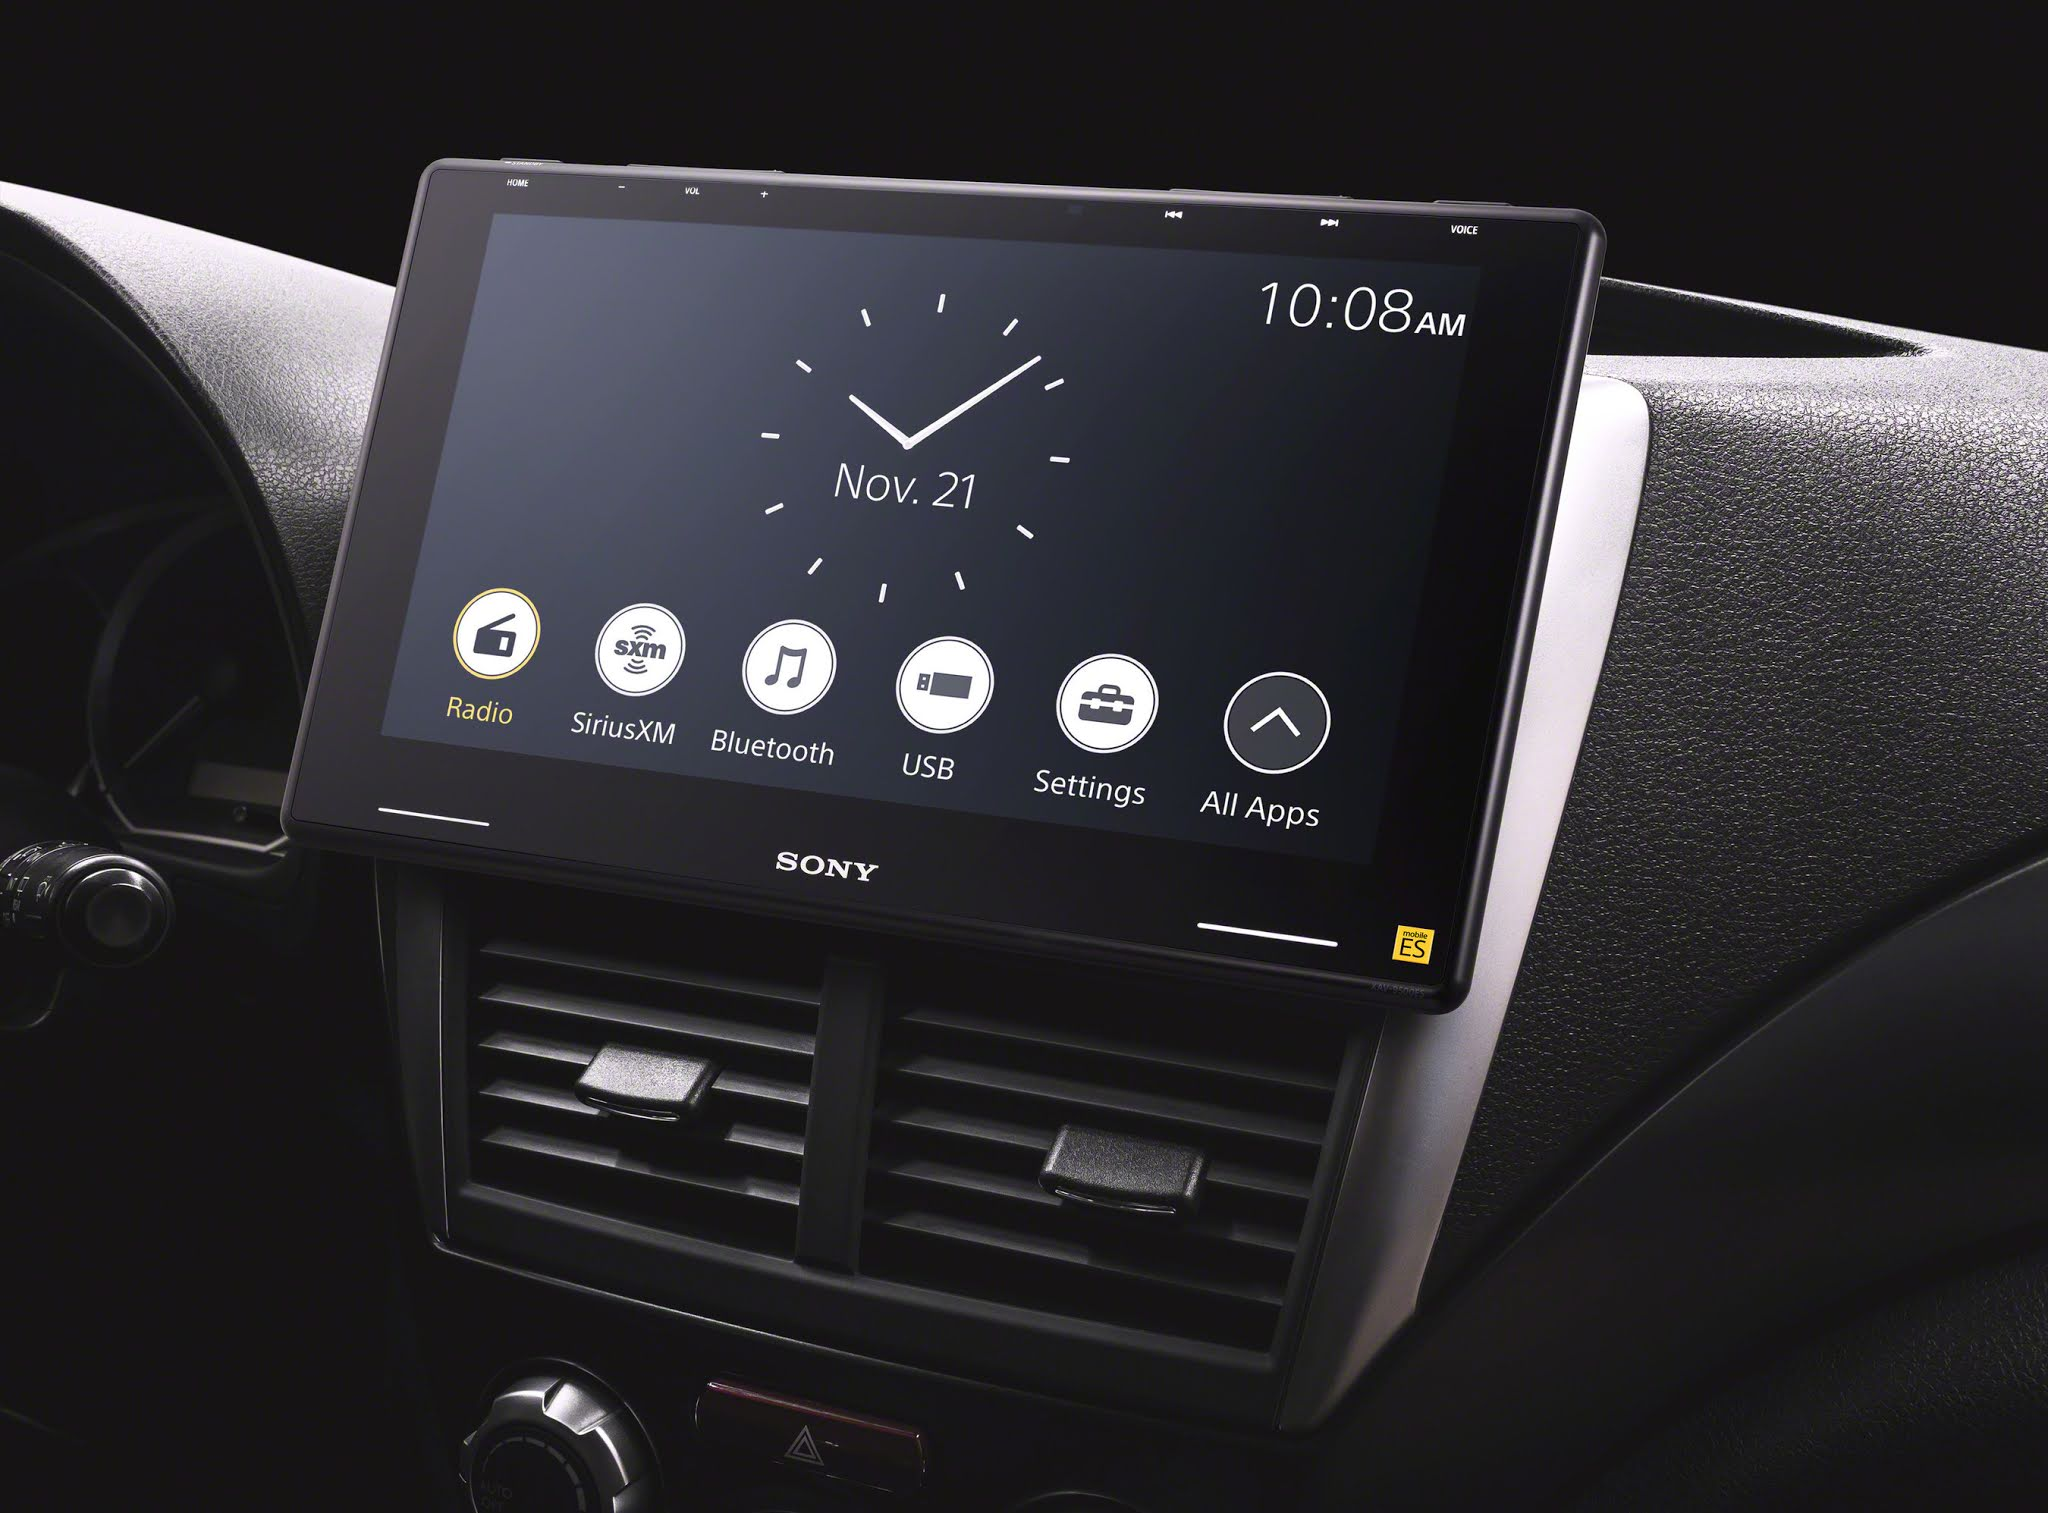 Sony Electronics Welcomes New XAV-9500ES In-car Media Receiver to its Premium Mobile ES Lineup